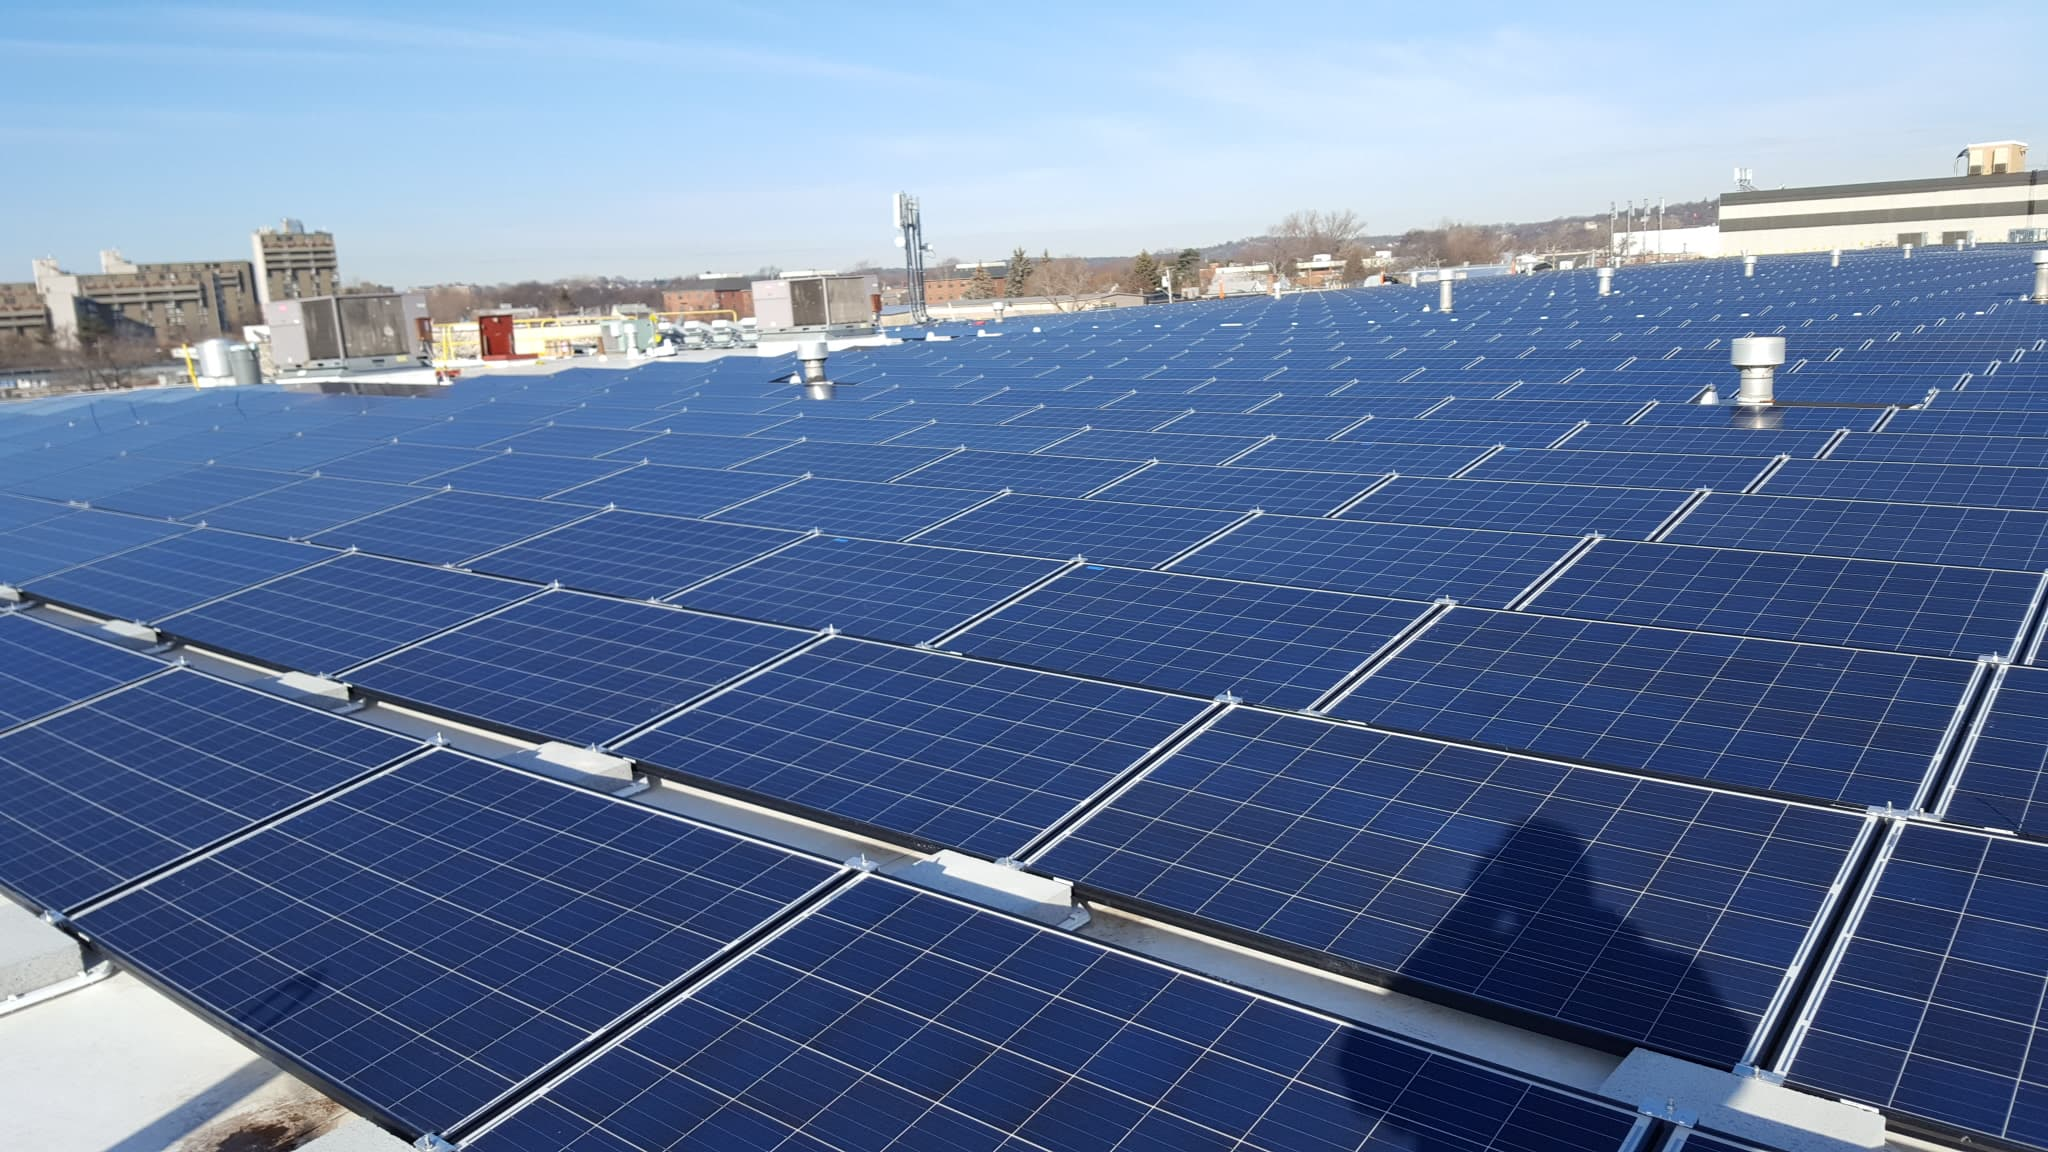 Accadia Accardi Foods Goes Green With Rooftop Solar